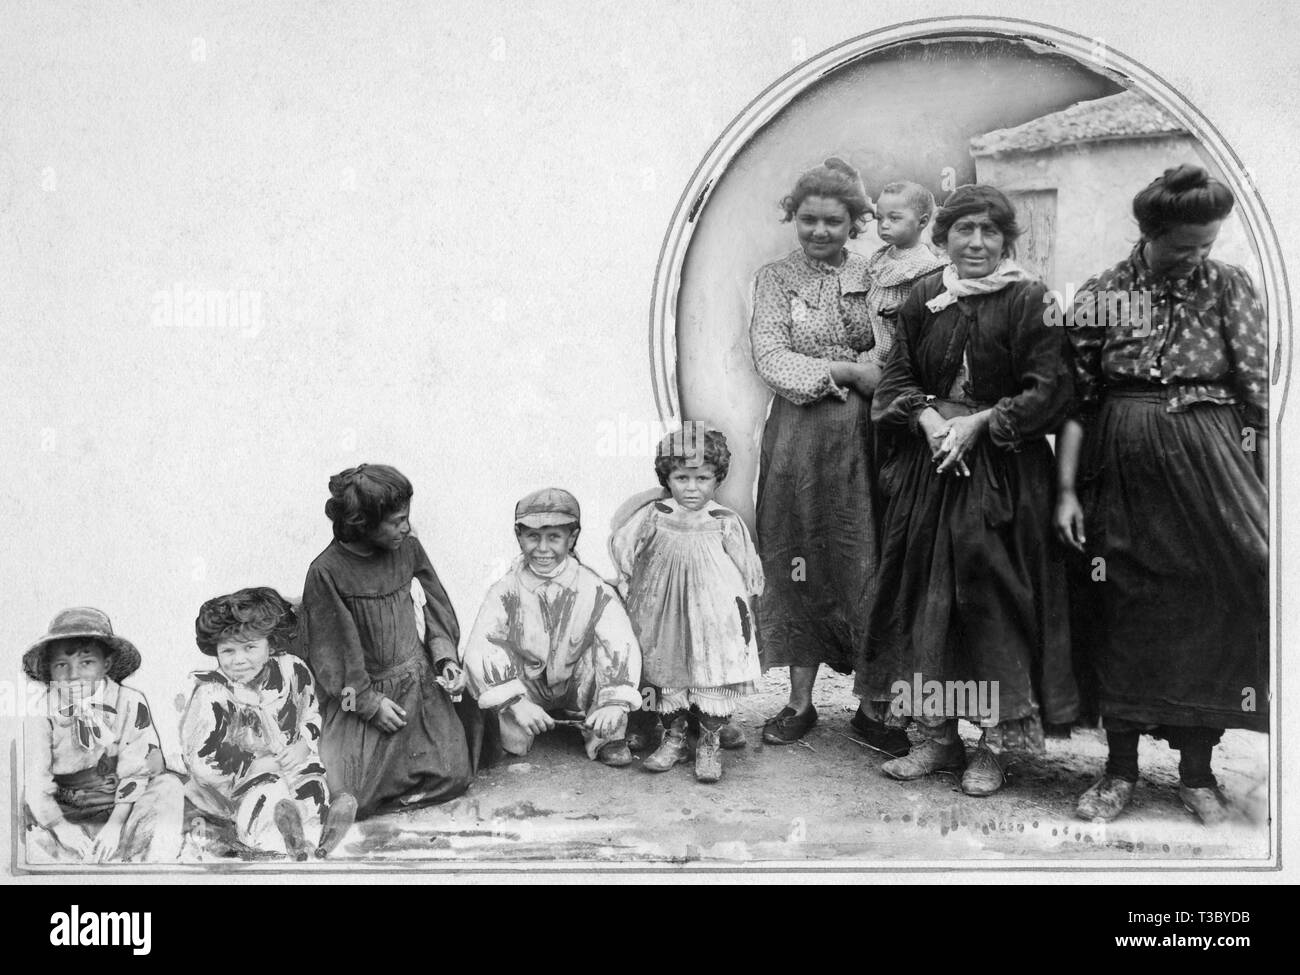 italy, women and children gipsies, 1910 - Stock Image